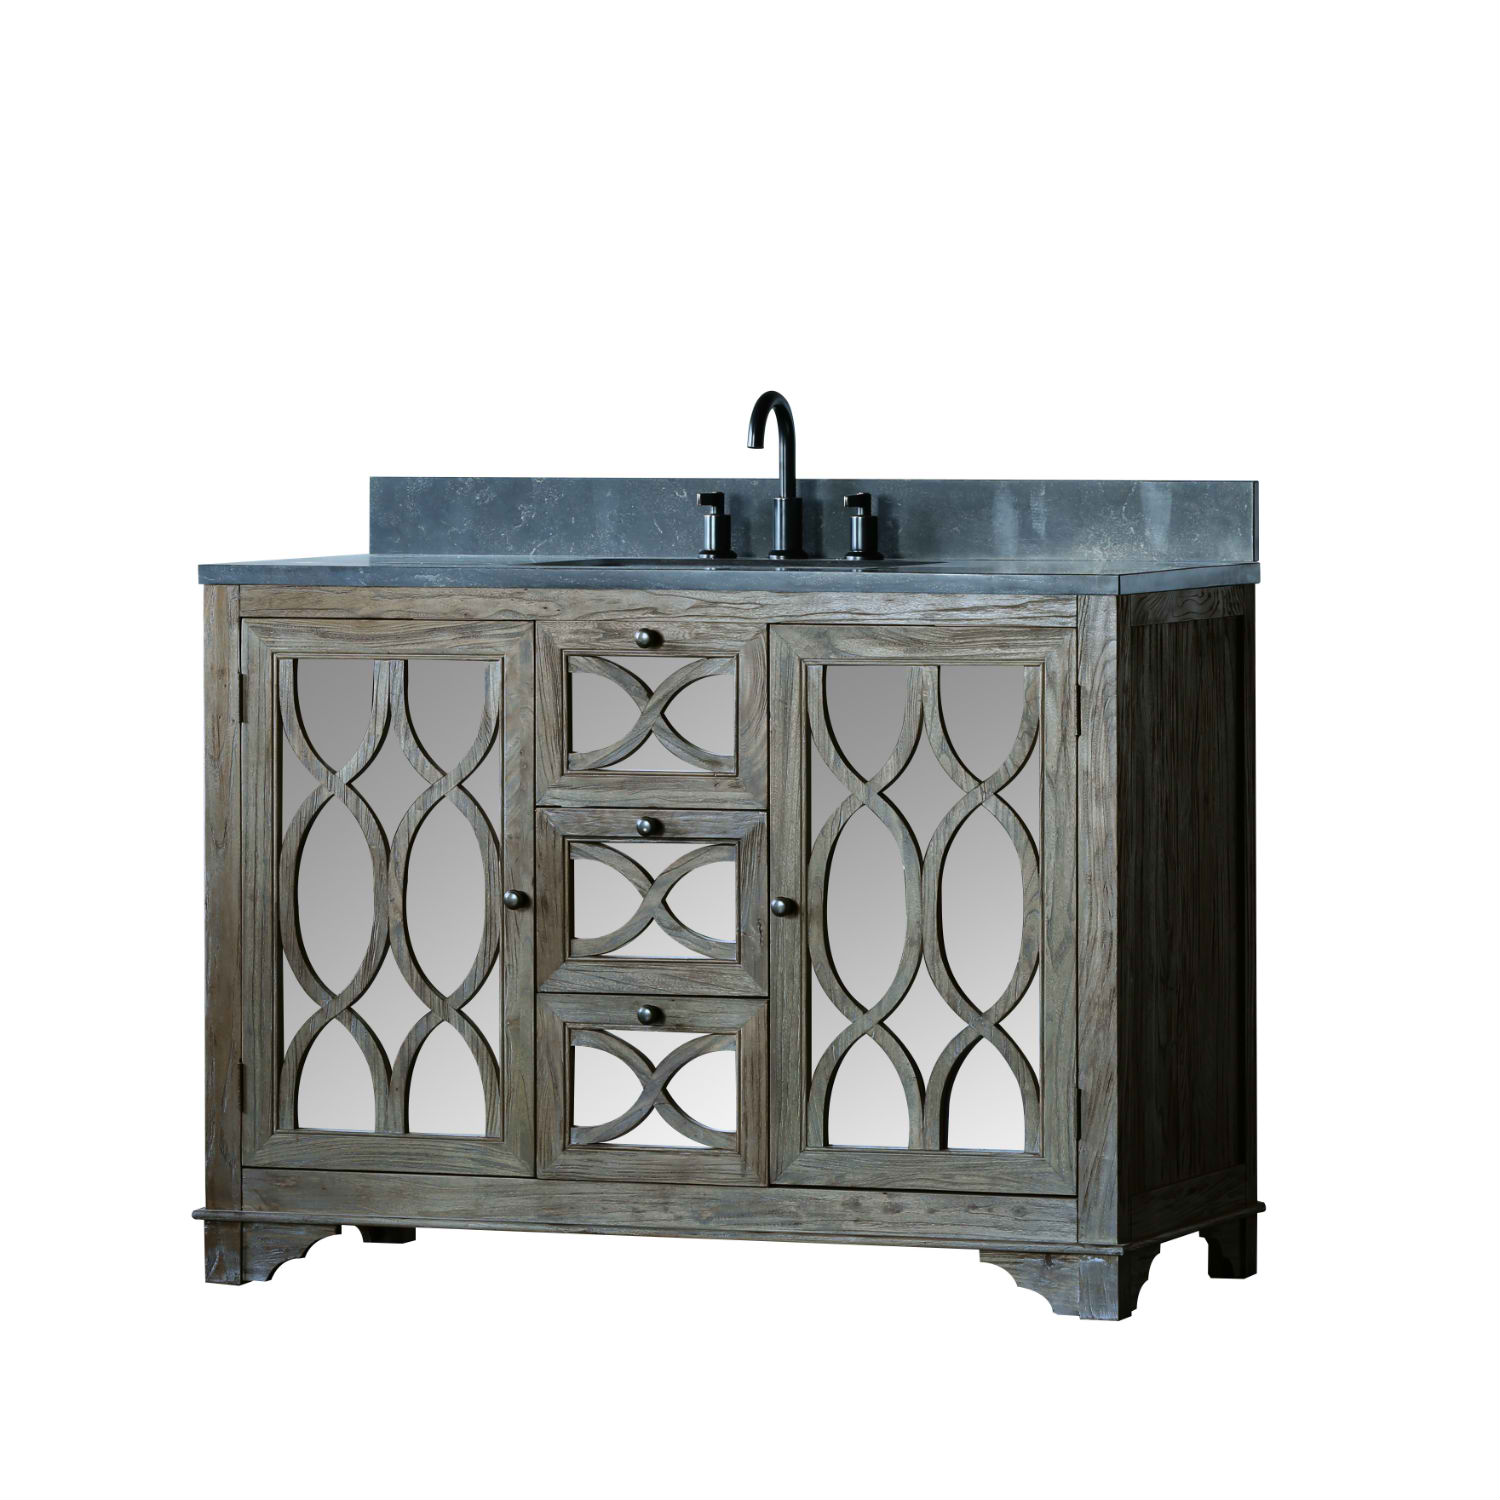 "48"" Handcrafted Solid Wood Single Sink Brushed Natural Finish with Natural Moon Stone Top Style Bathroom Sink Vanity"